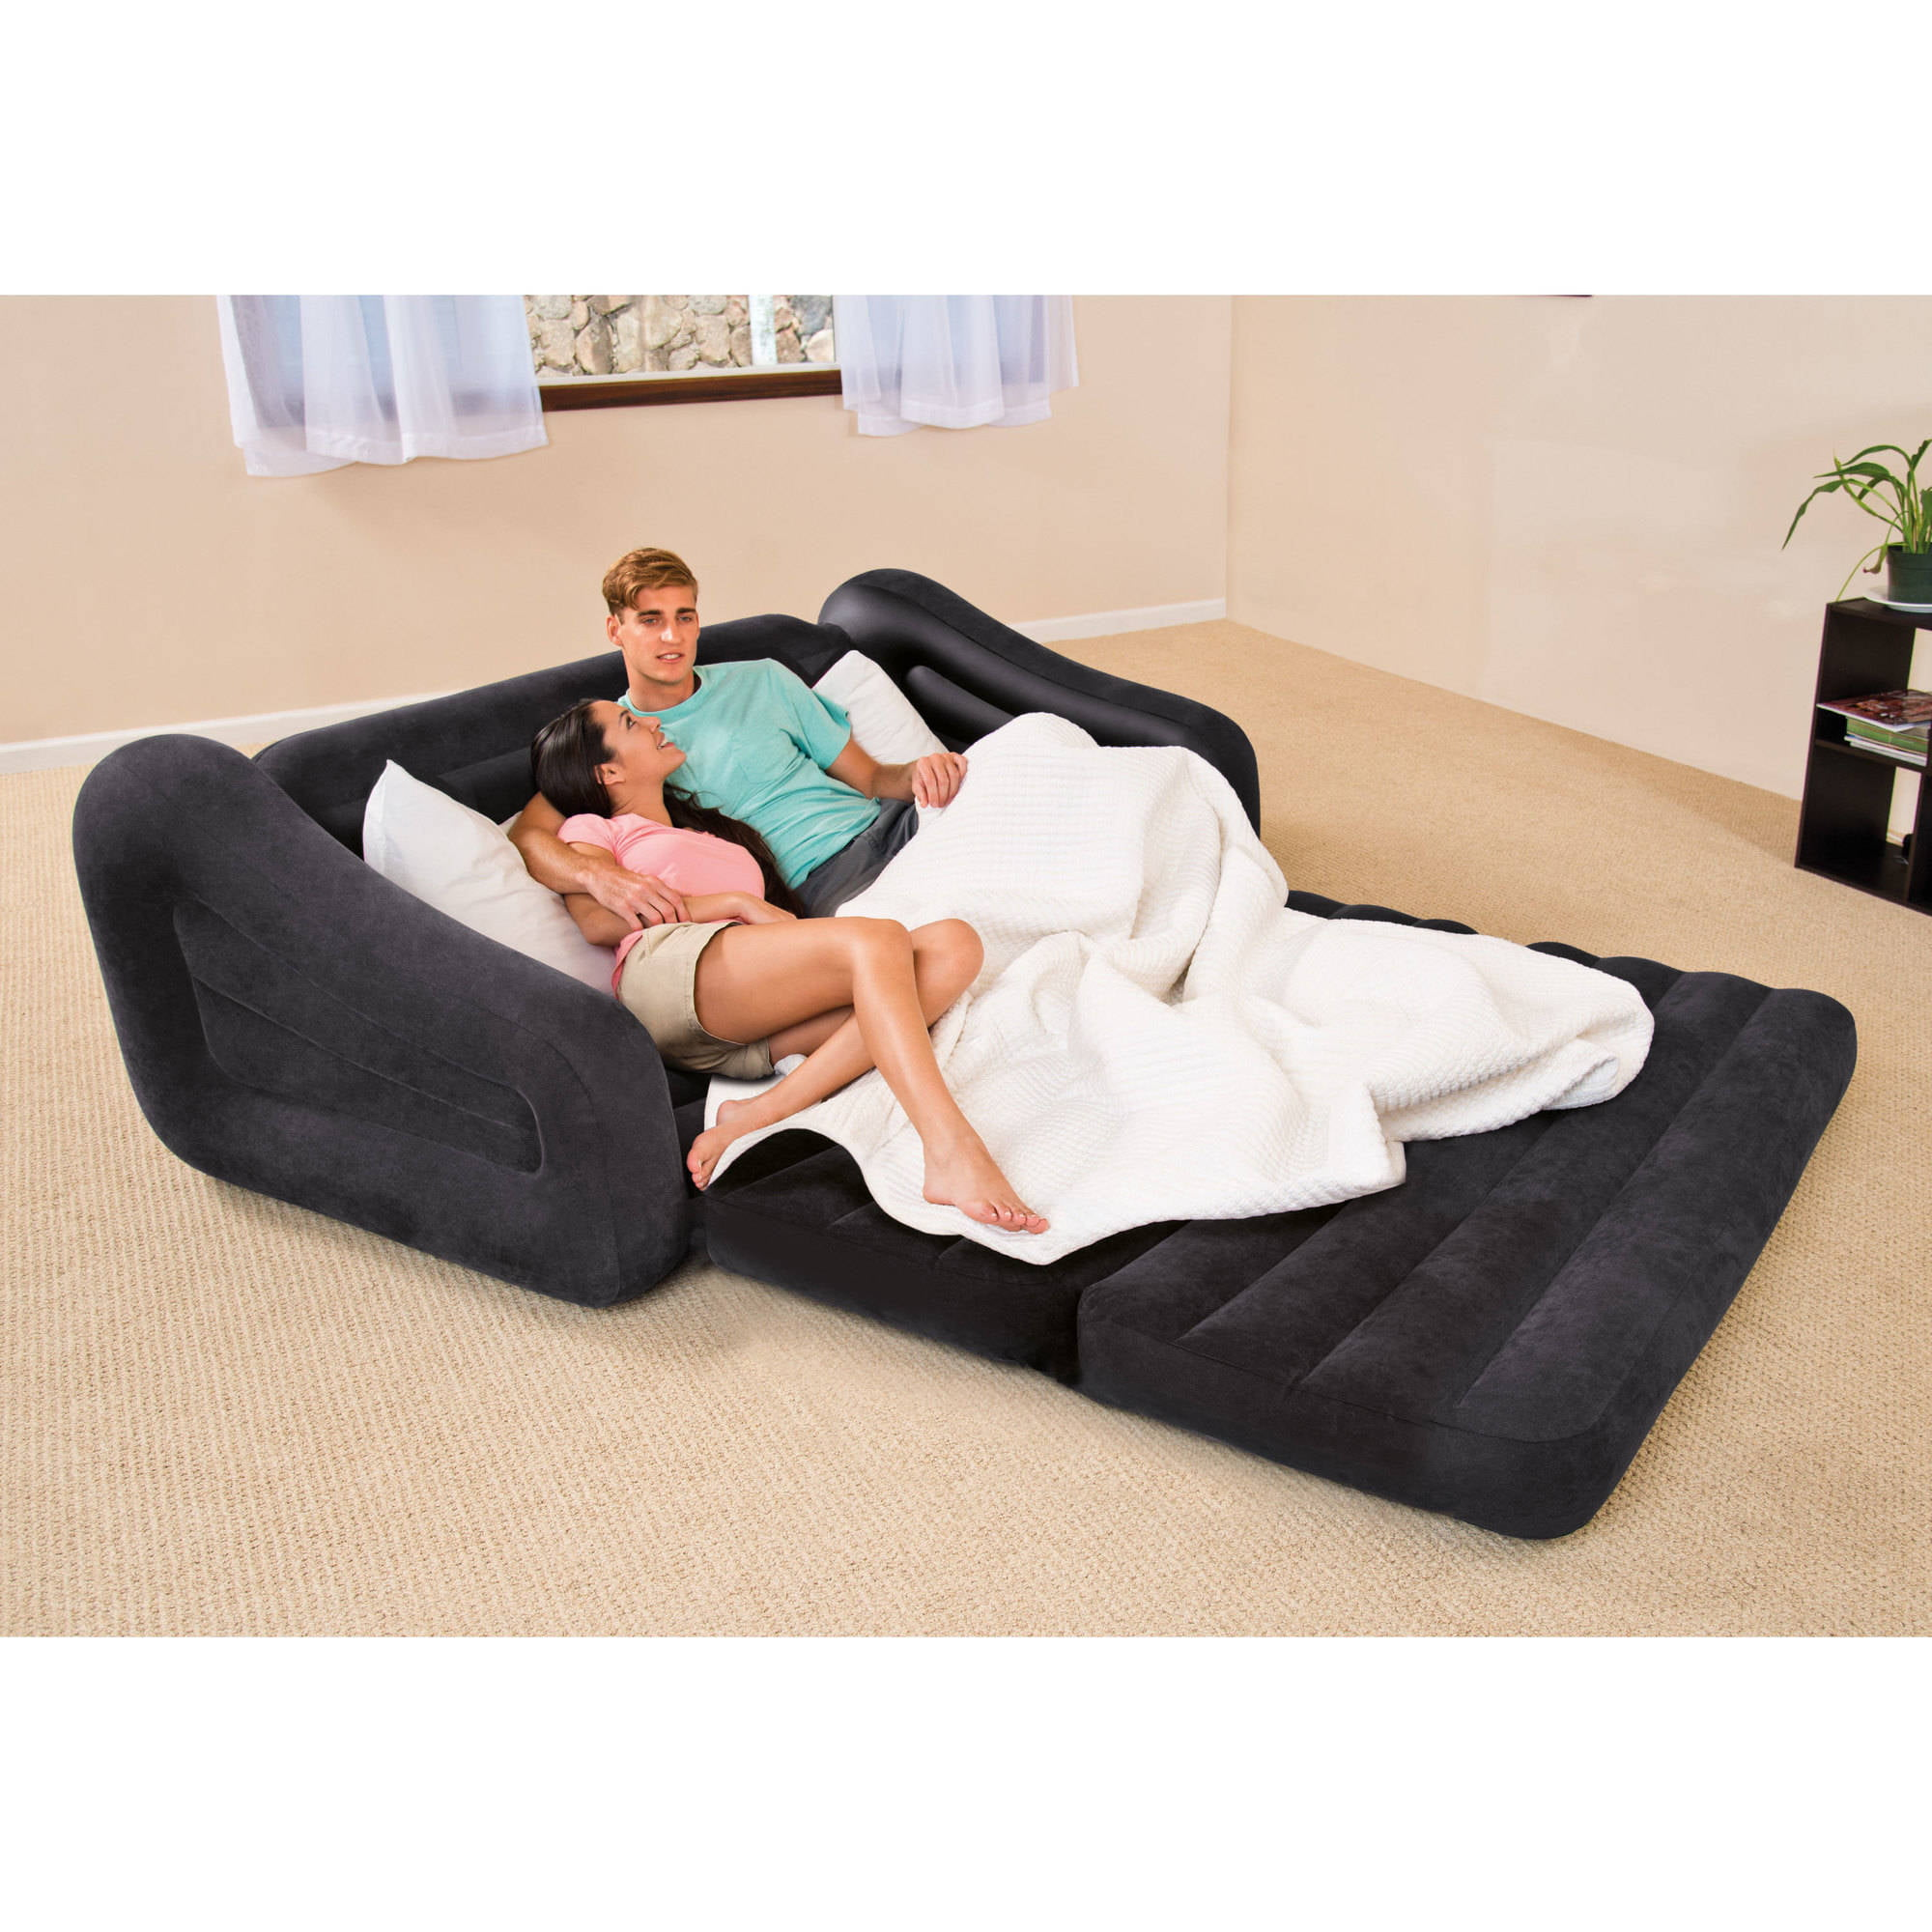 Fold out chair bed for adults - Fold Out Chair Bed For Adults